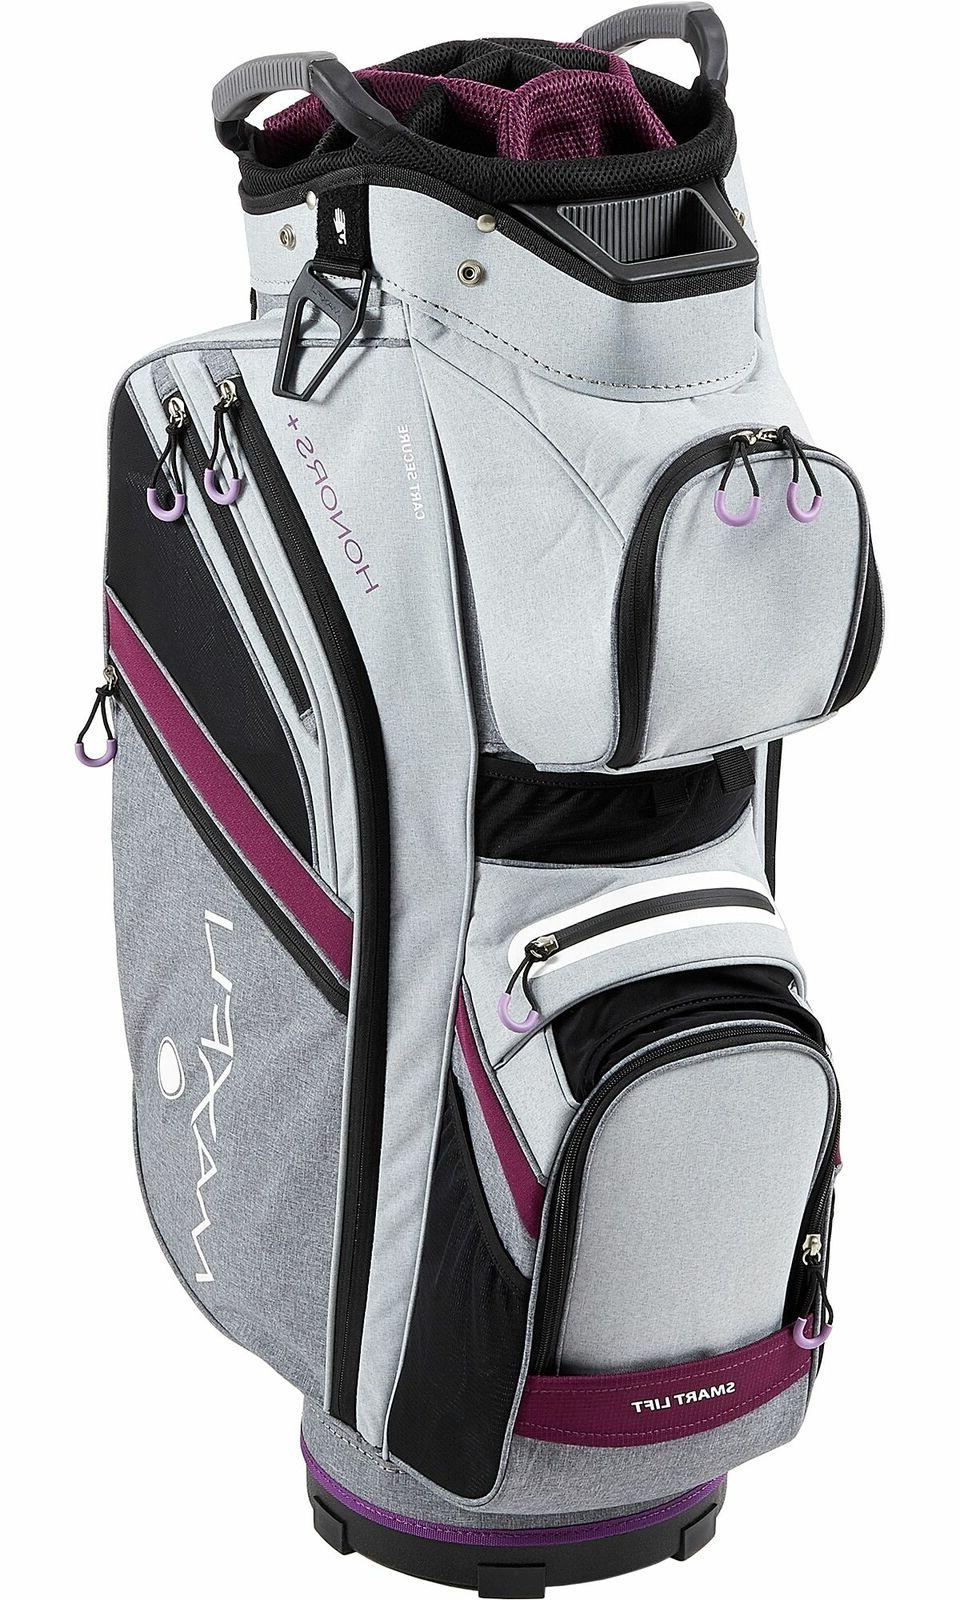 new womens golf cart bag 2019 honors